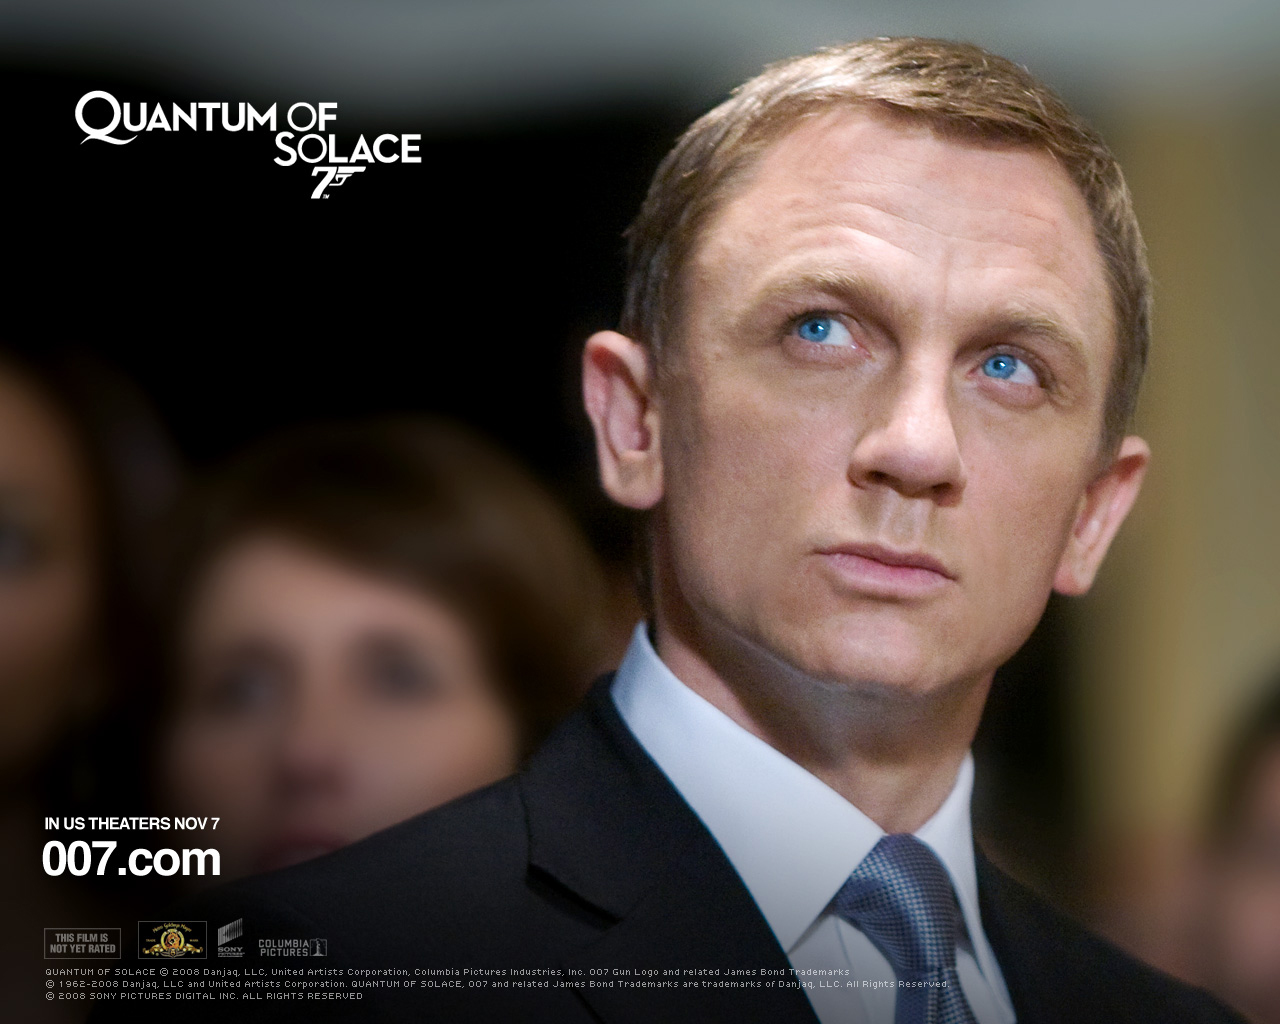 james bond movies: quantum of solace wallpaper @ universal exports